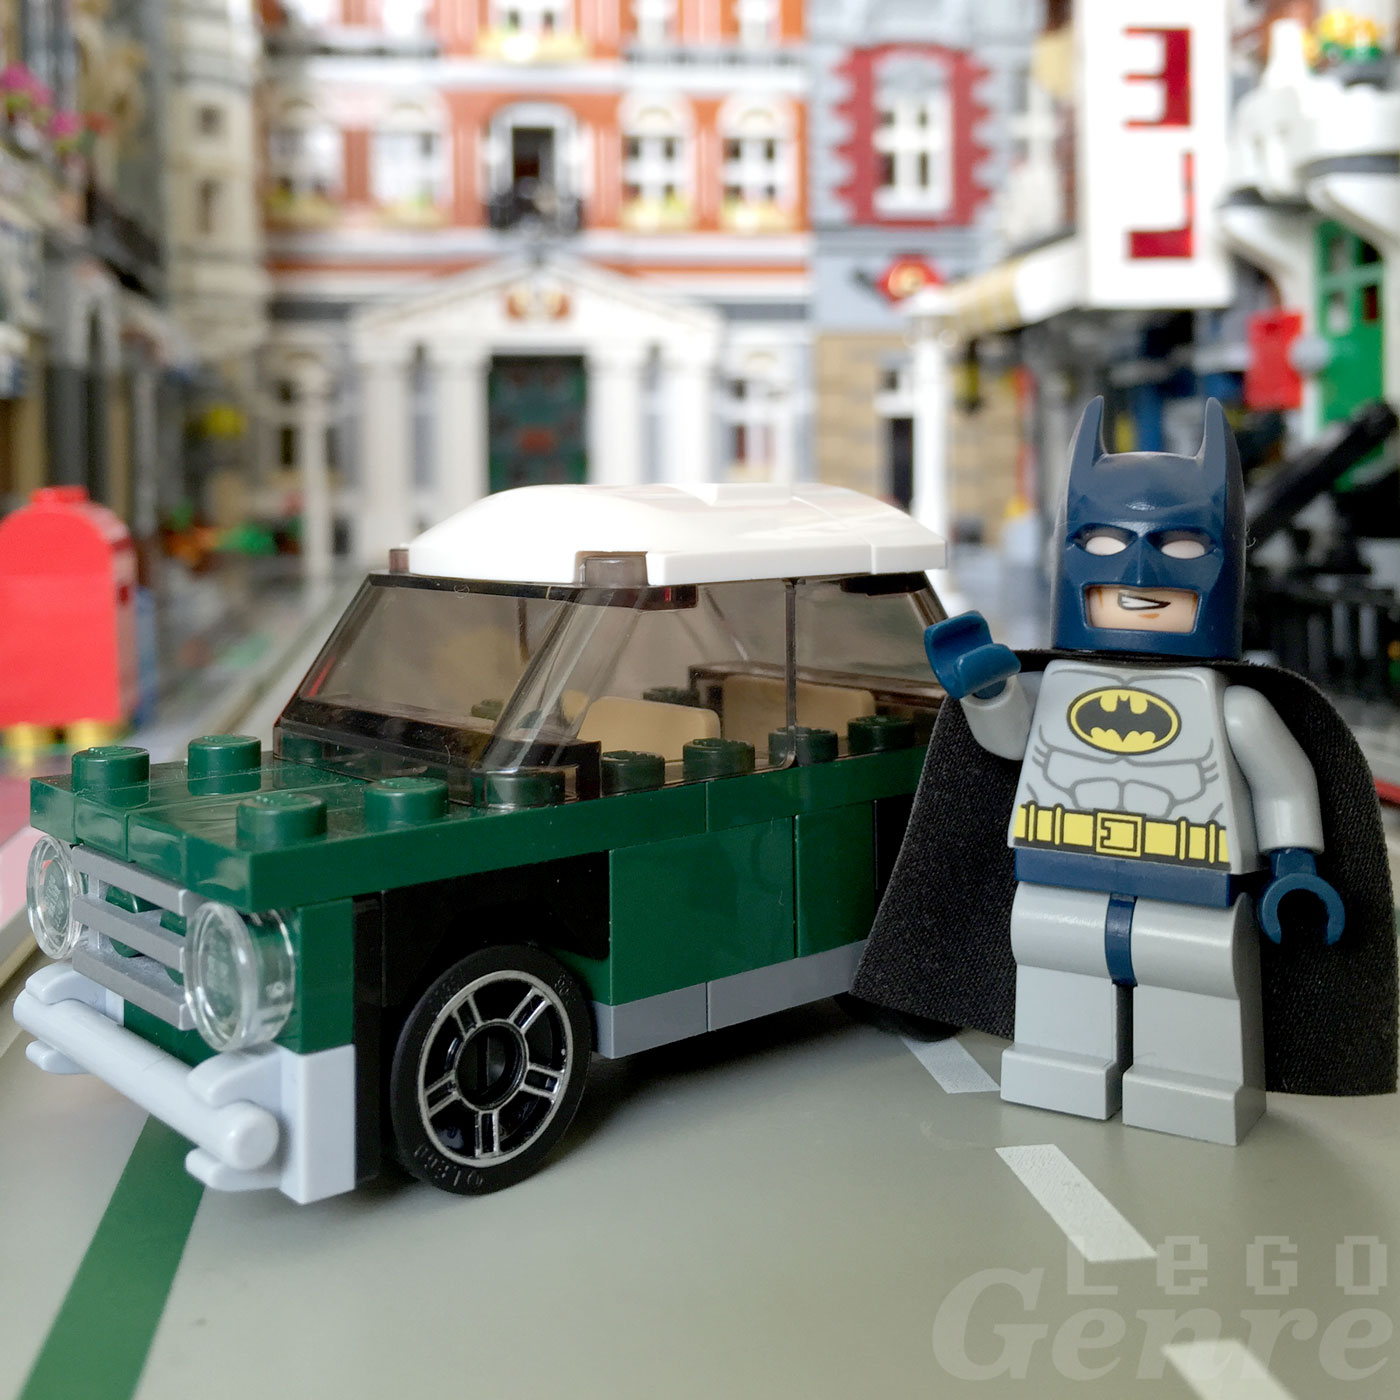 LegoGenre: Batman's New Car